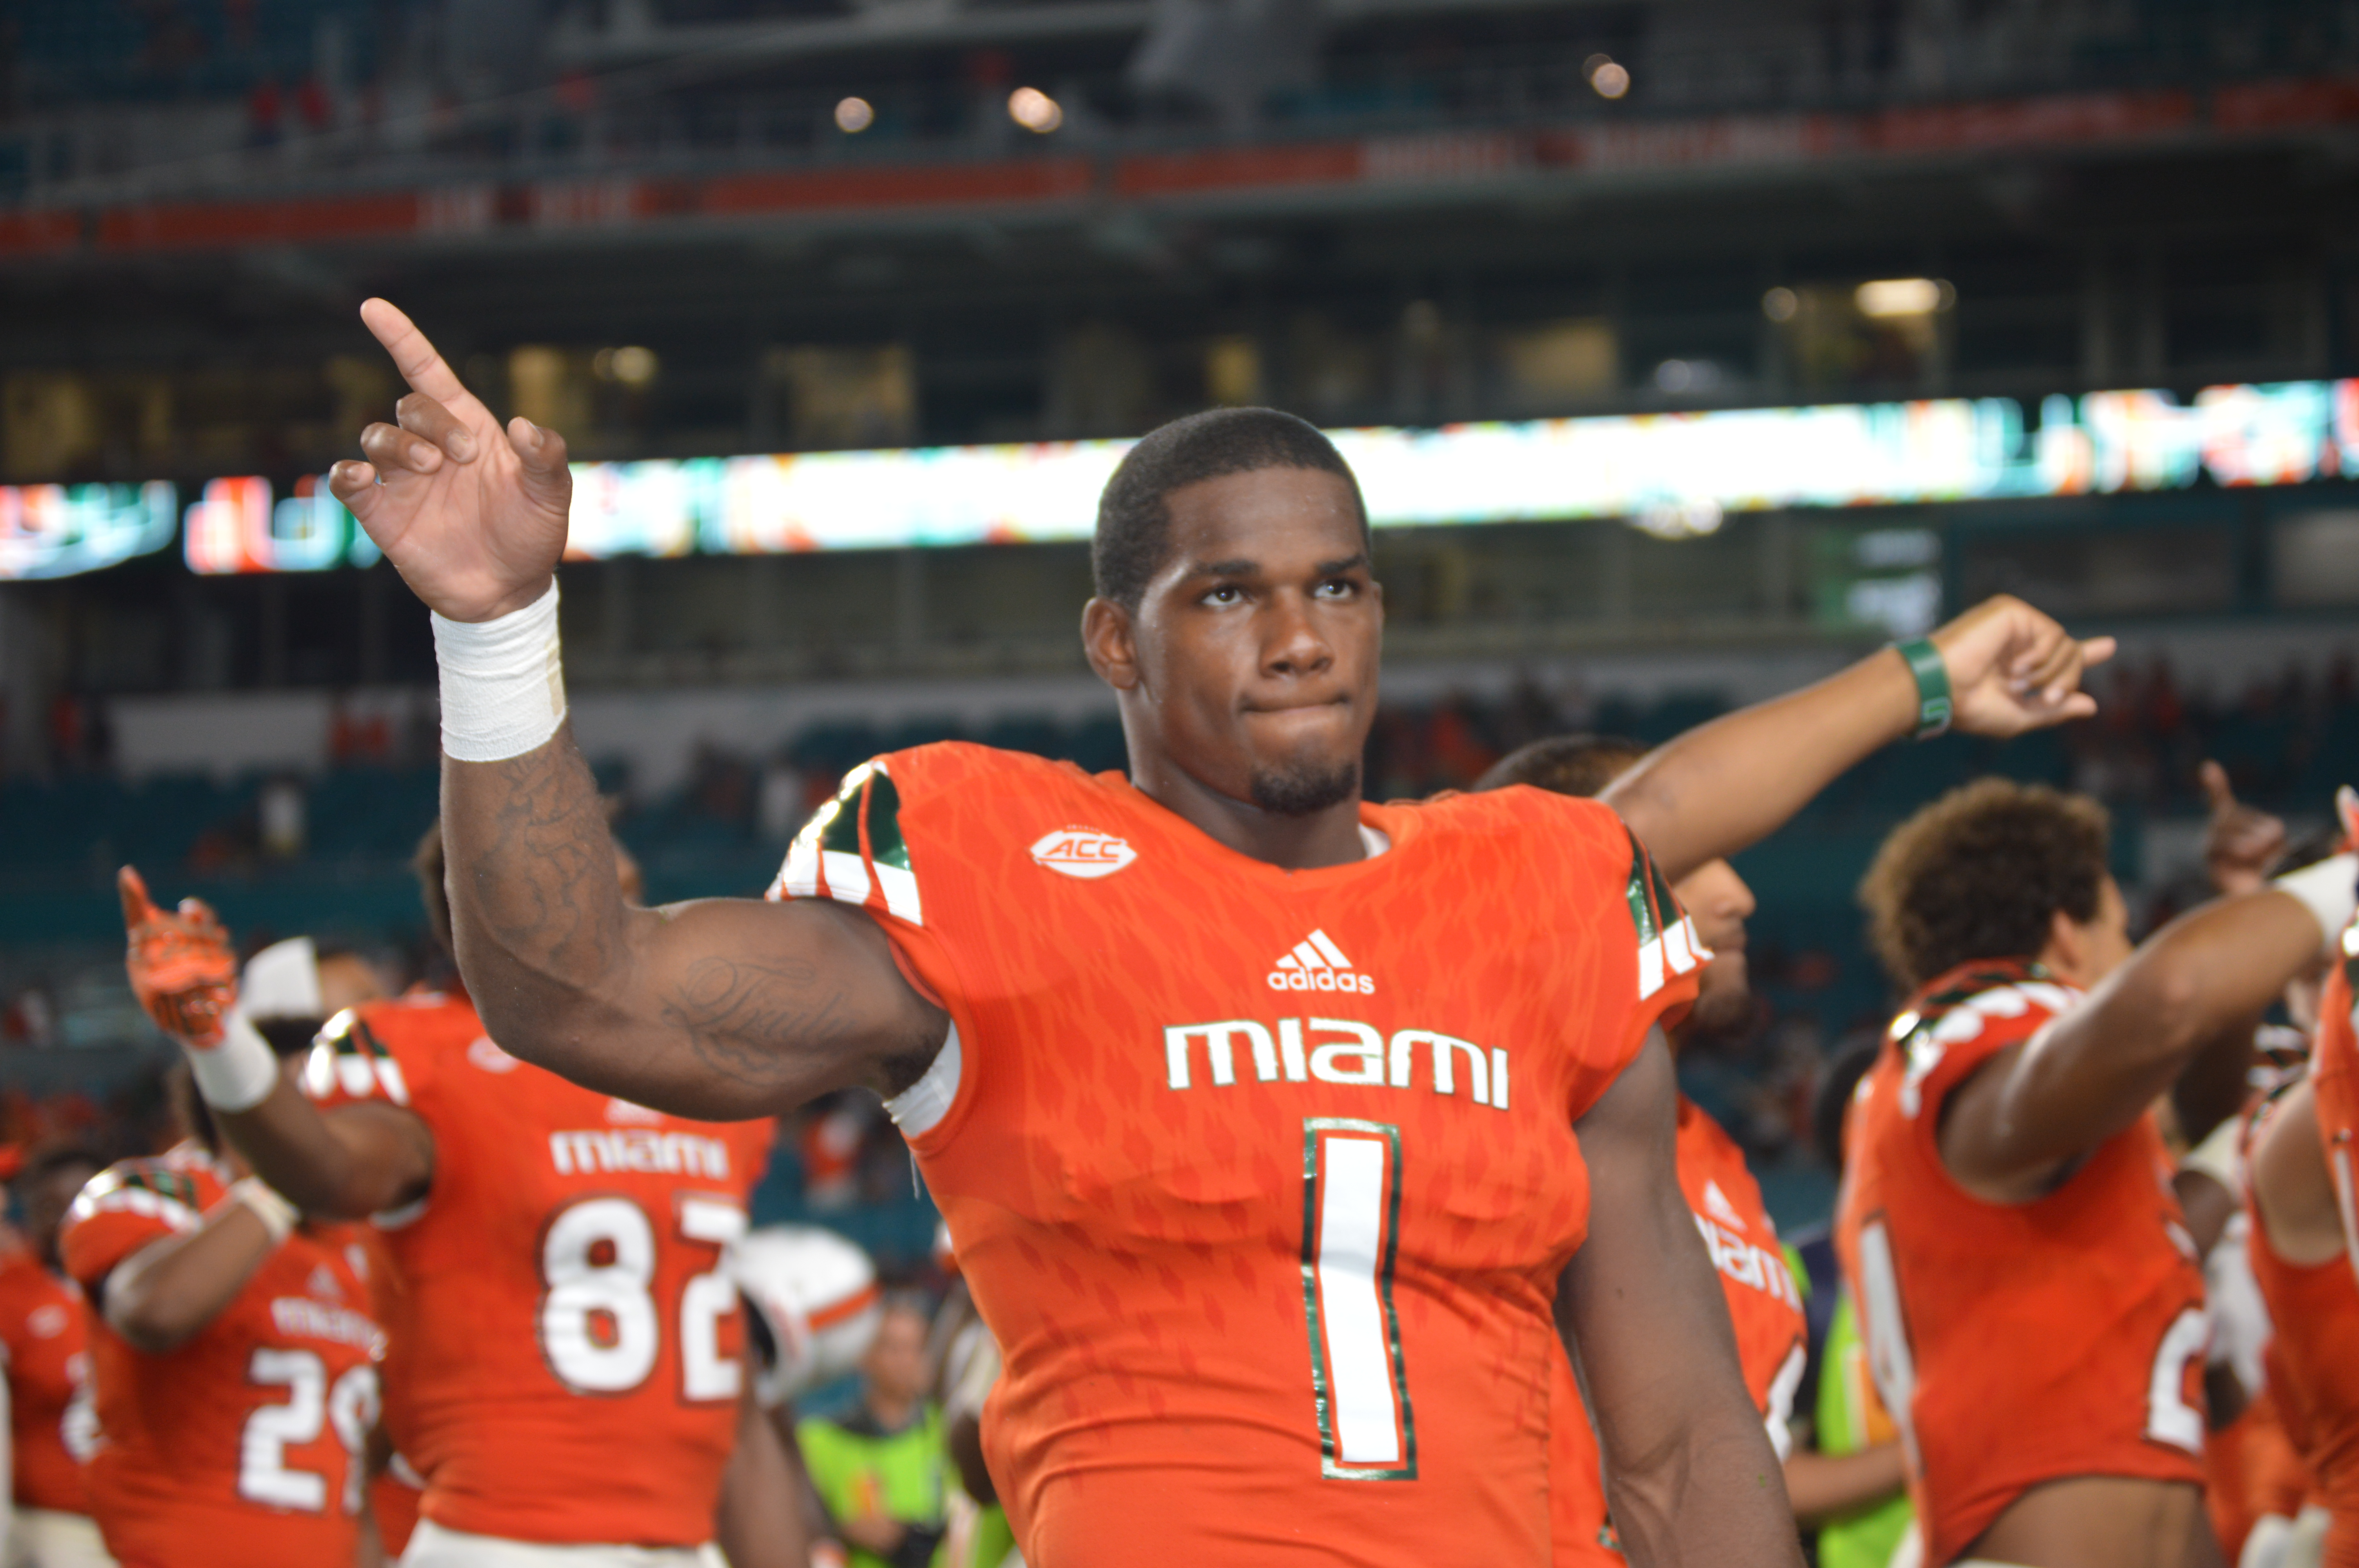 Mark Walton didn't give a hoo.... he umm, he had a realy good game against the Owl's